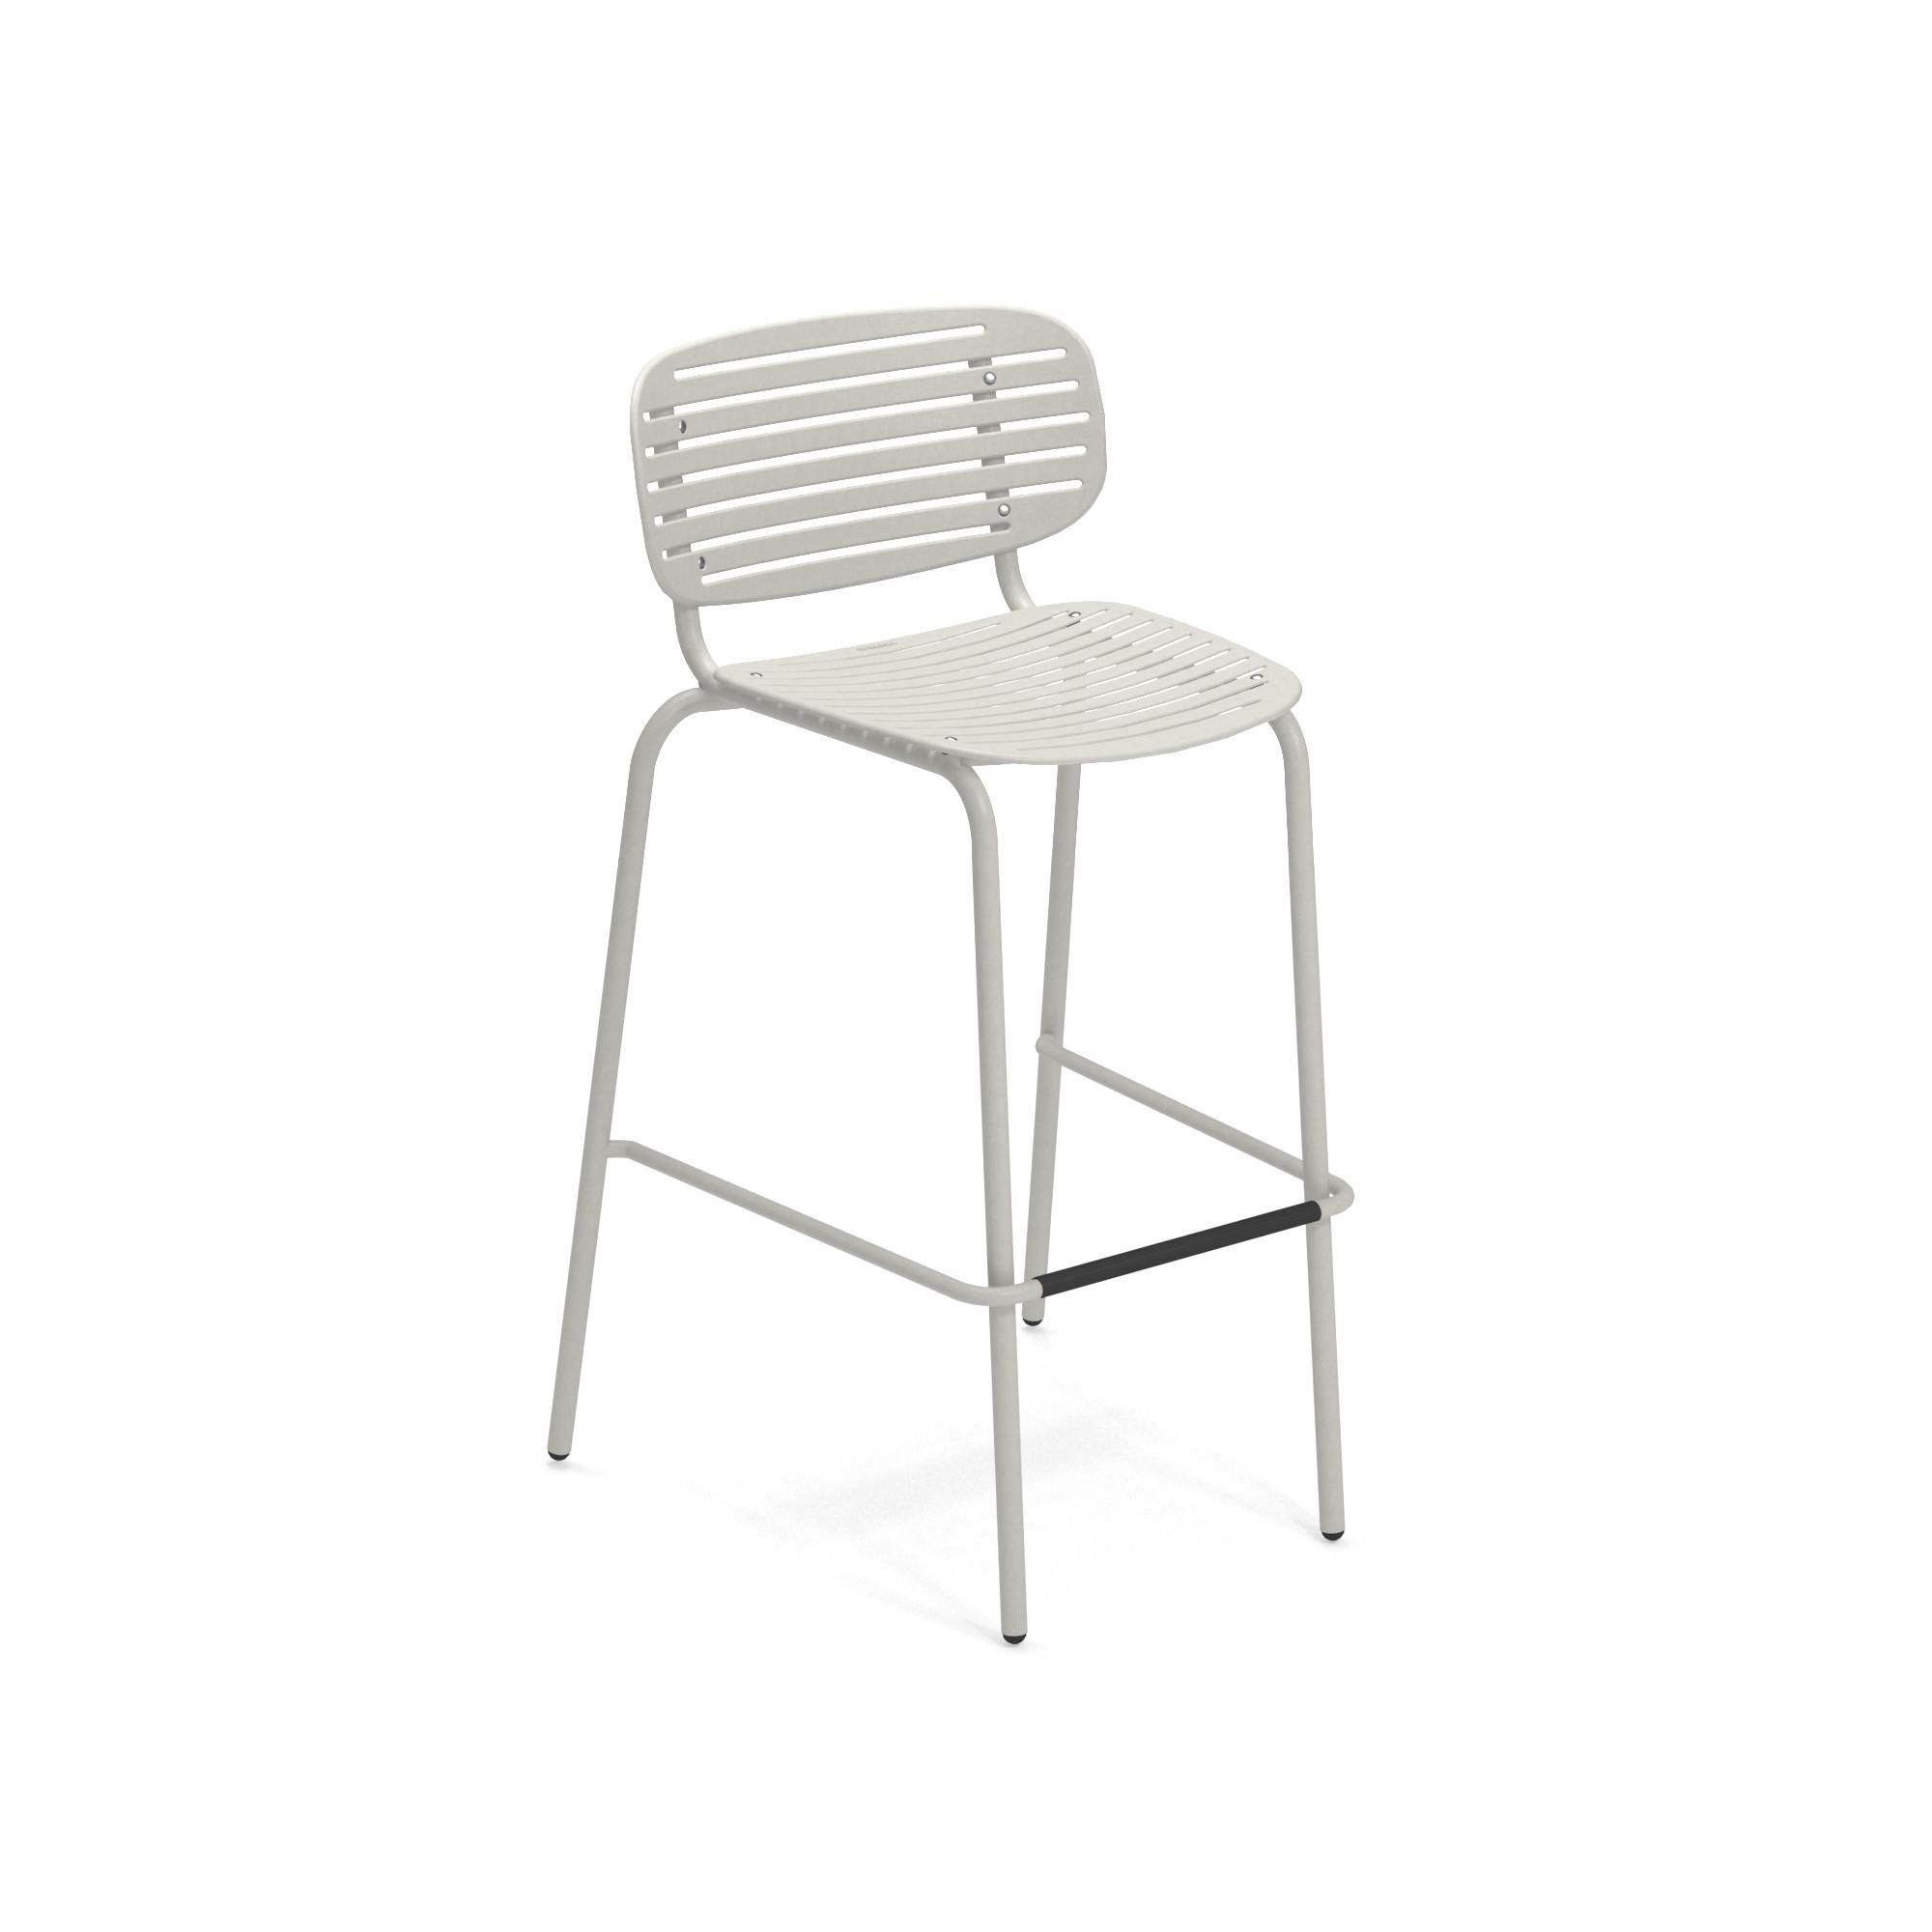 emuamericas, llc 649-73 bar stool, stacking, outdoor